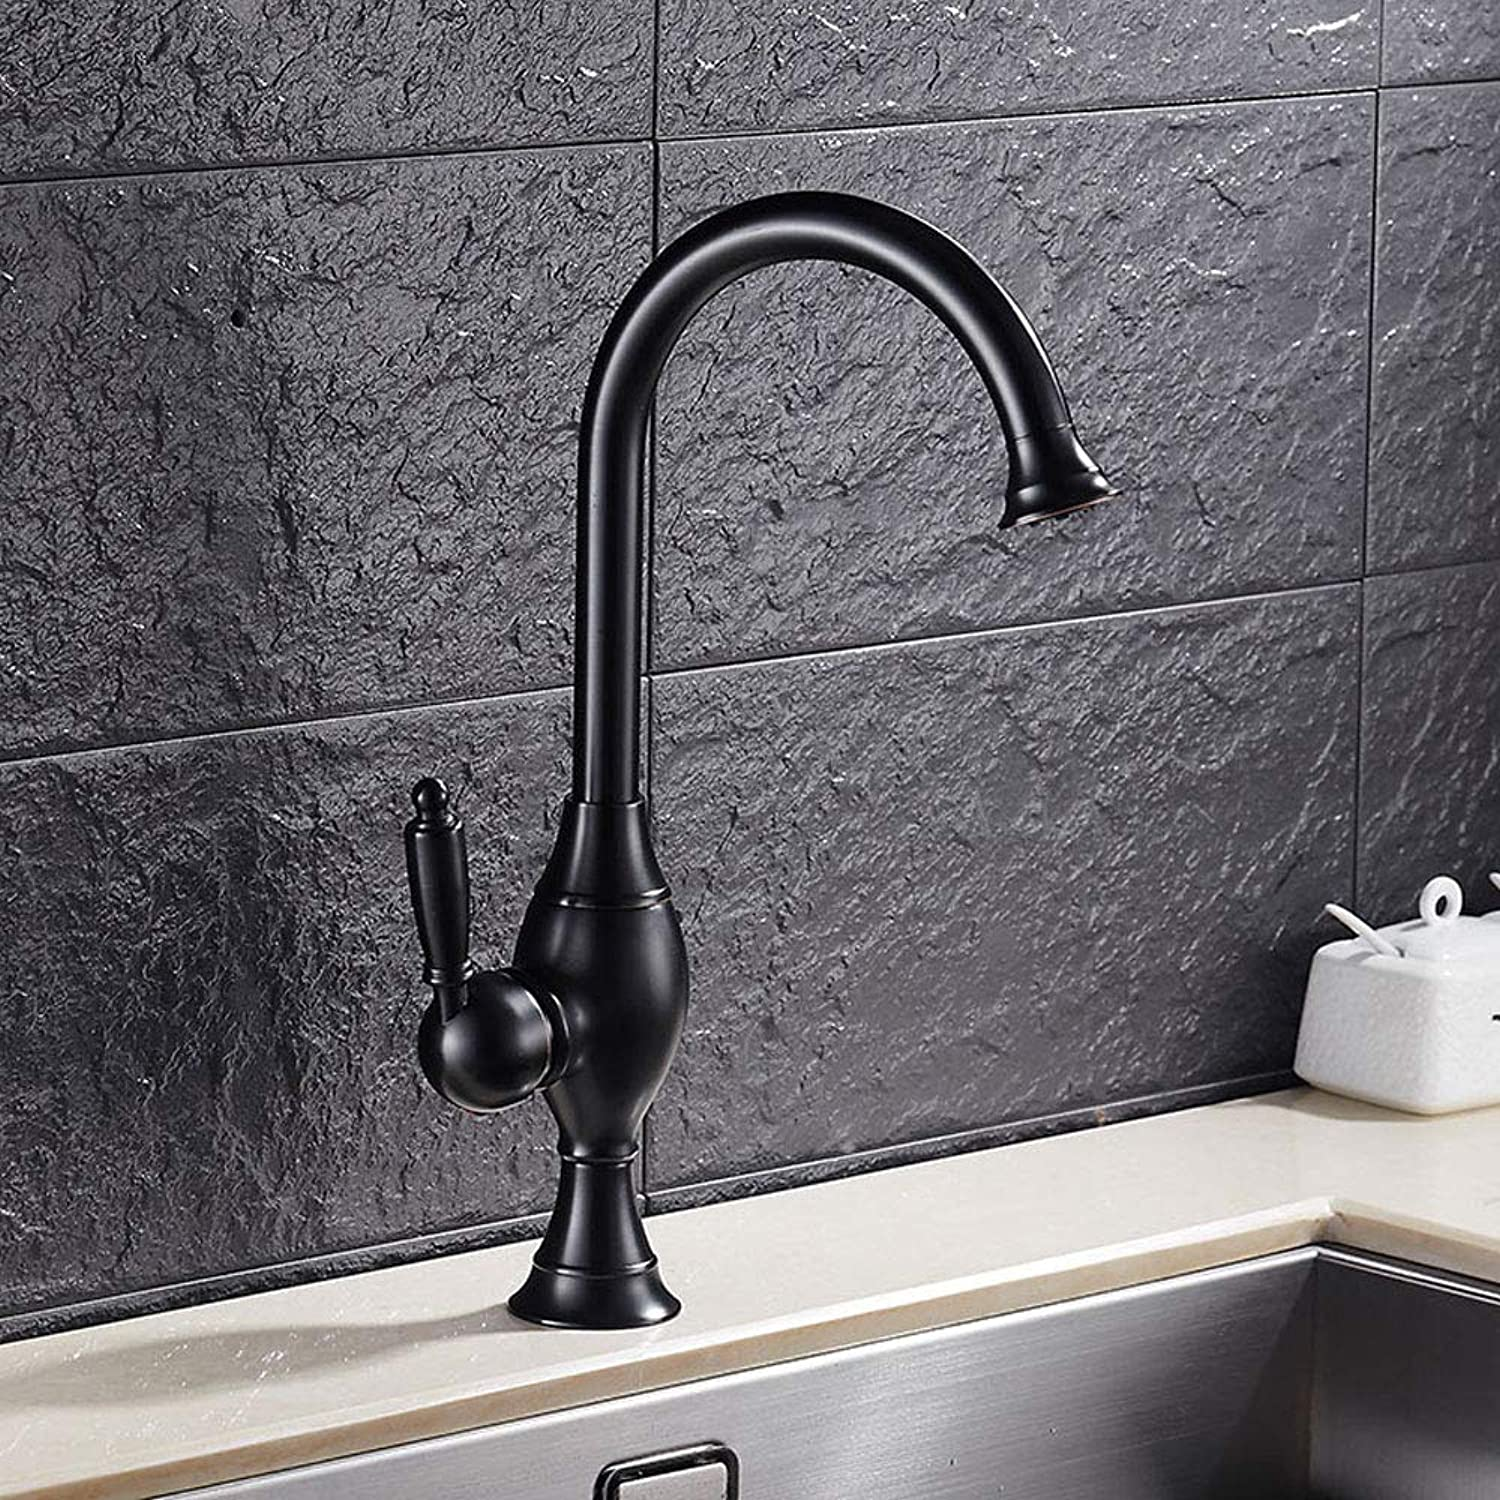 Innovation Lxy Country Style Tall Bath Tap Nostalgia Washbasin Mixer Tap 360 ° redatable Single Lever High Countertop Basin Brass Basin Mixer Tap with High Extended Spout Brushed, Black